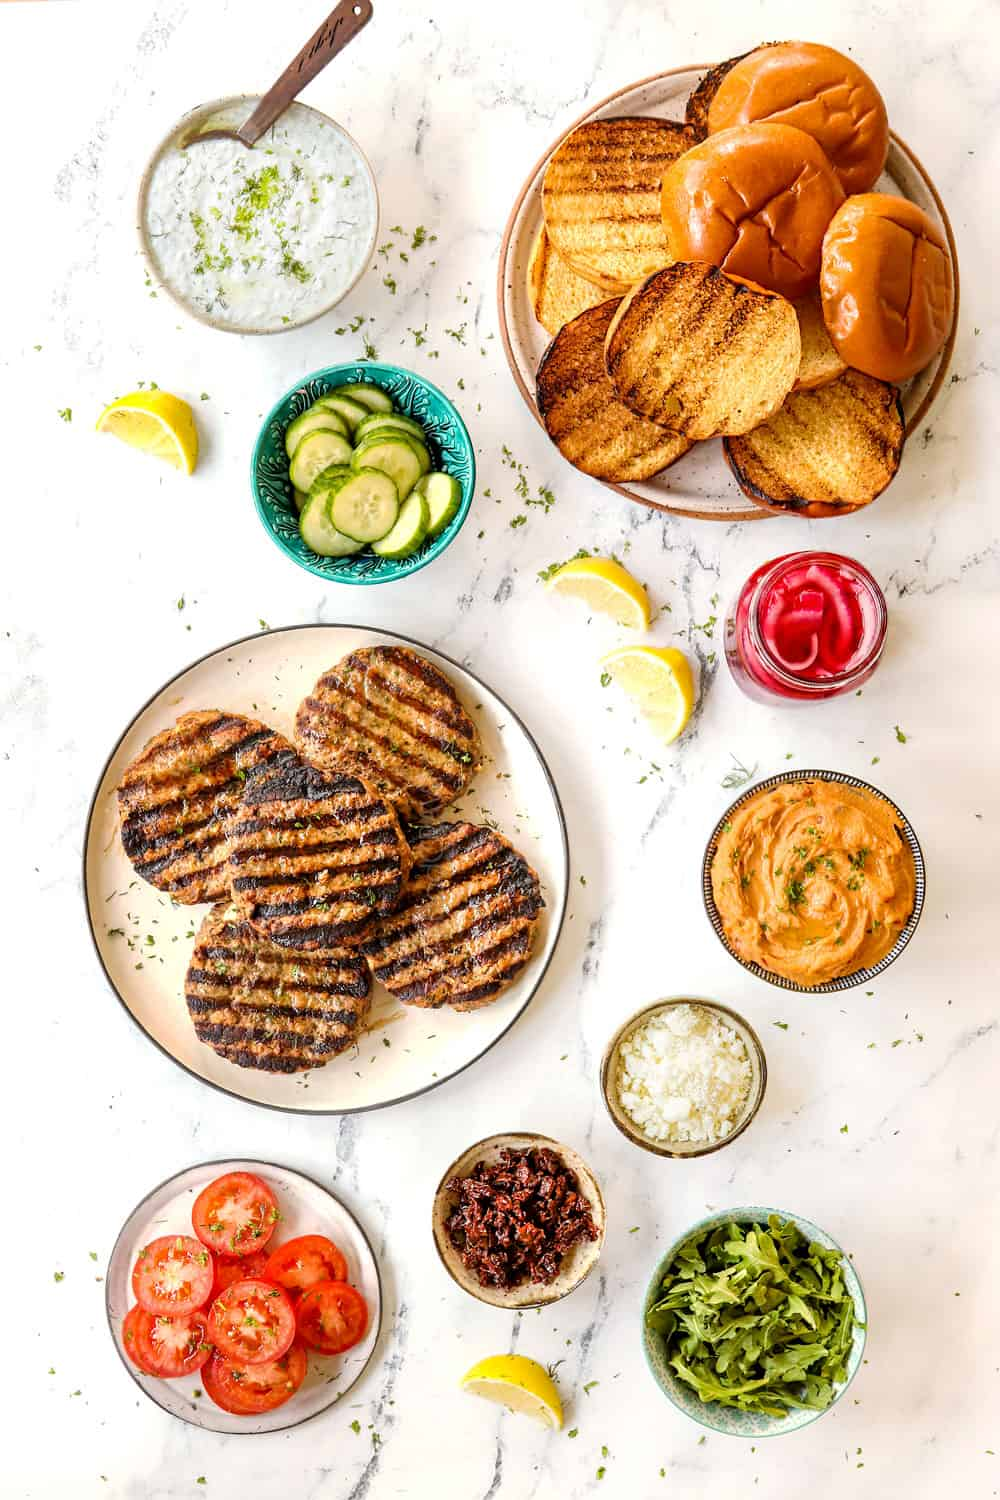 showing how to make Greek lamb burger recipe with top view of lamb burger patties and toppings: hummus, cucumbers, red onions, tomatoes, sun-dried tomatoes, tzatziki